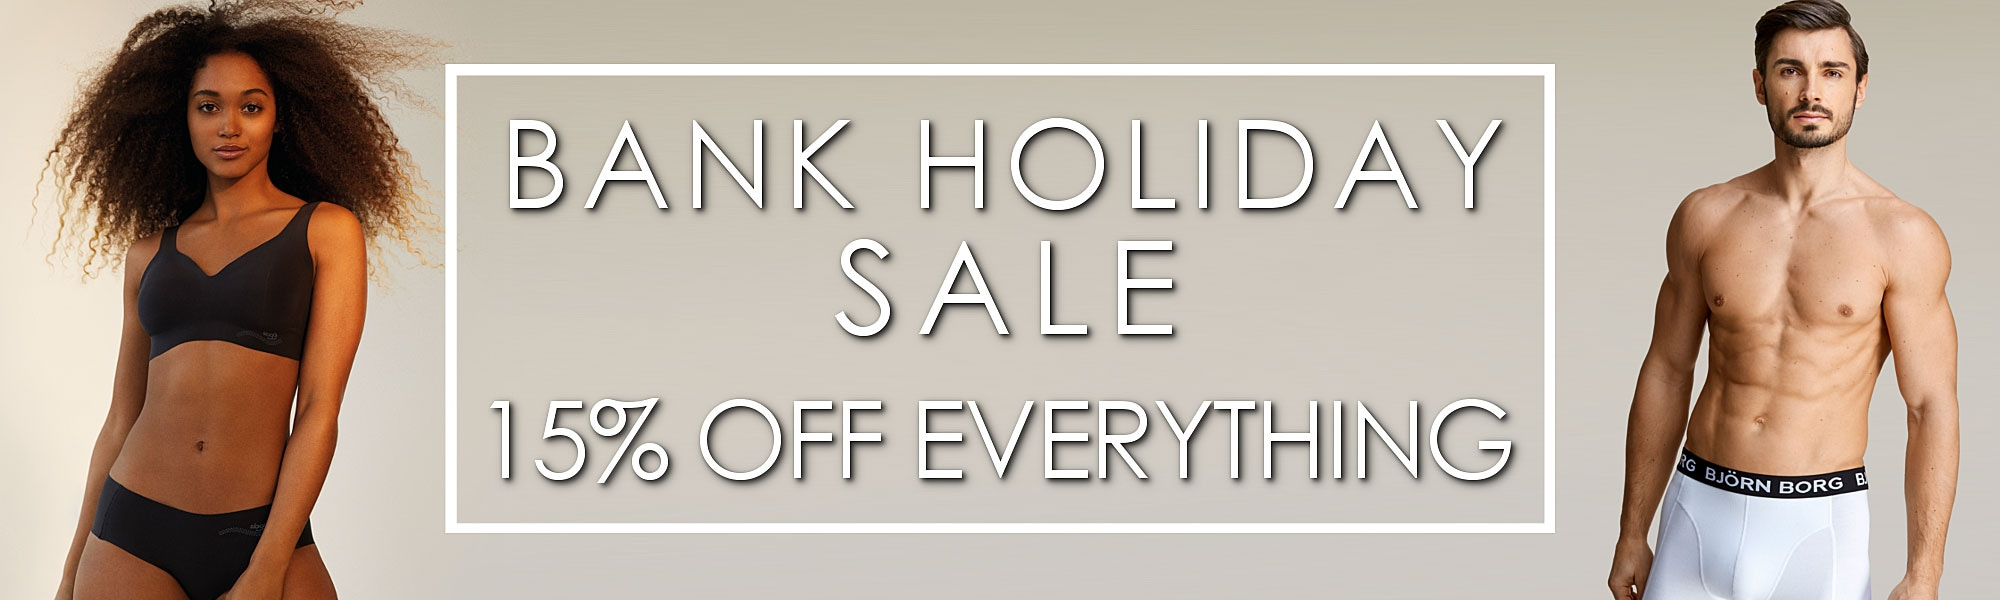 15% OFF BANK HOLIDAY SALE